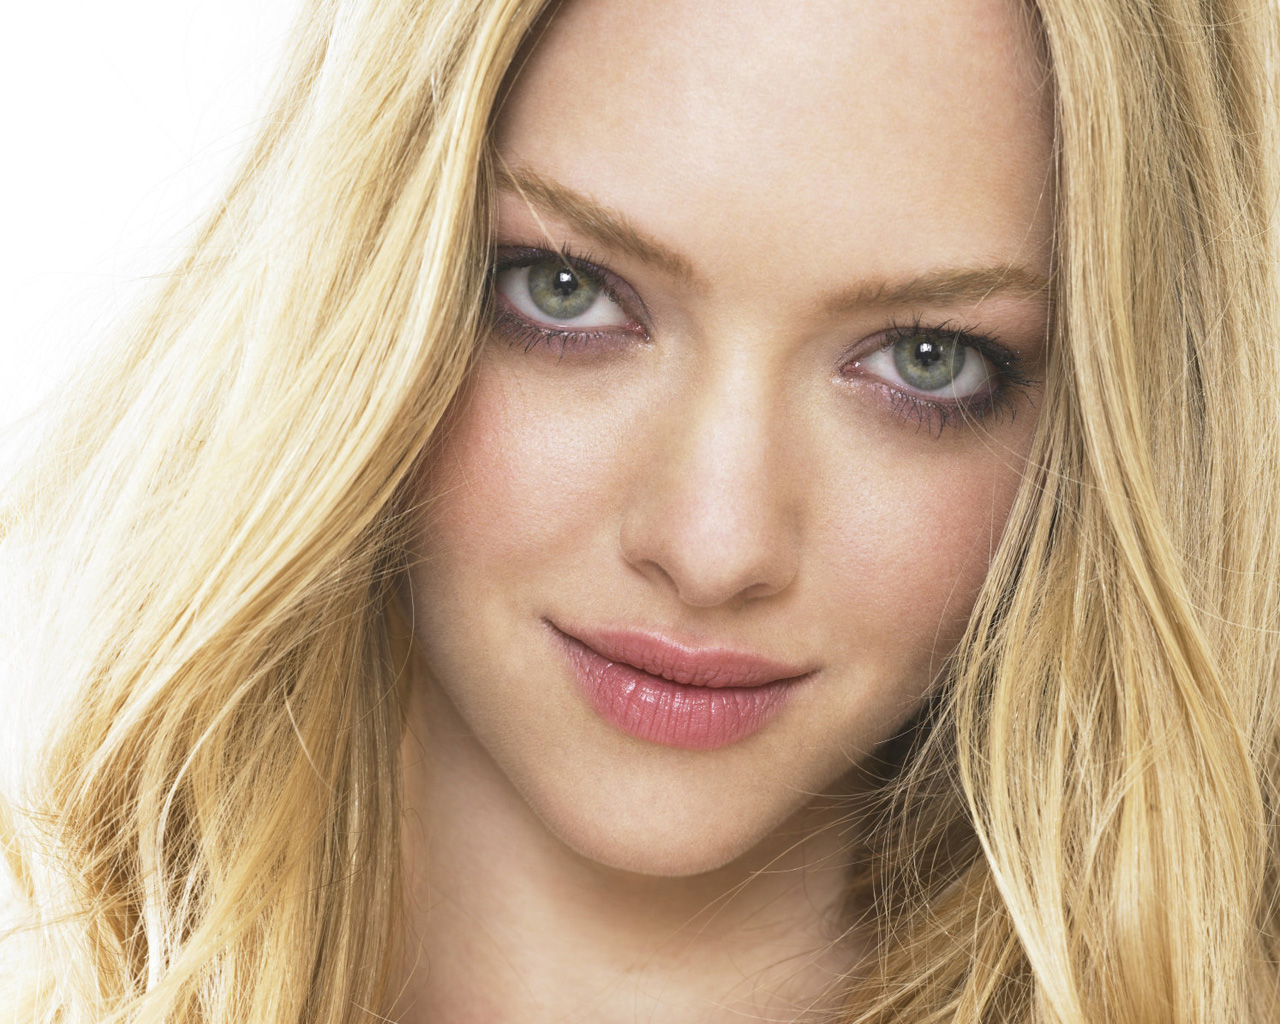 Amanda Seyfried wallpaper download